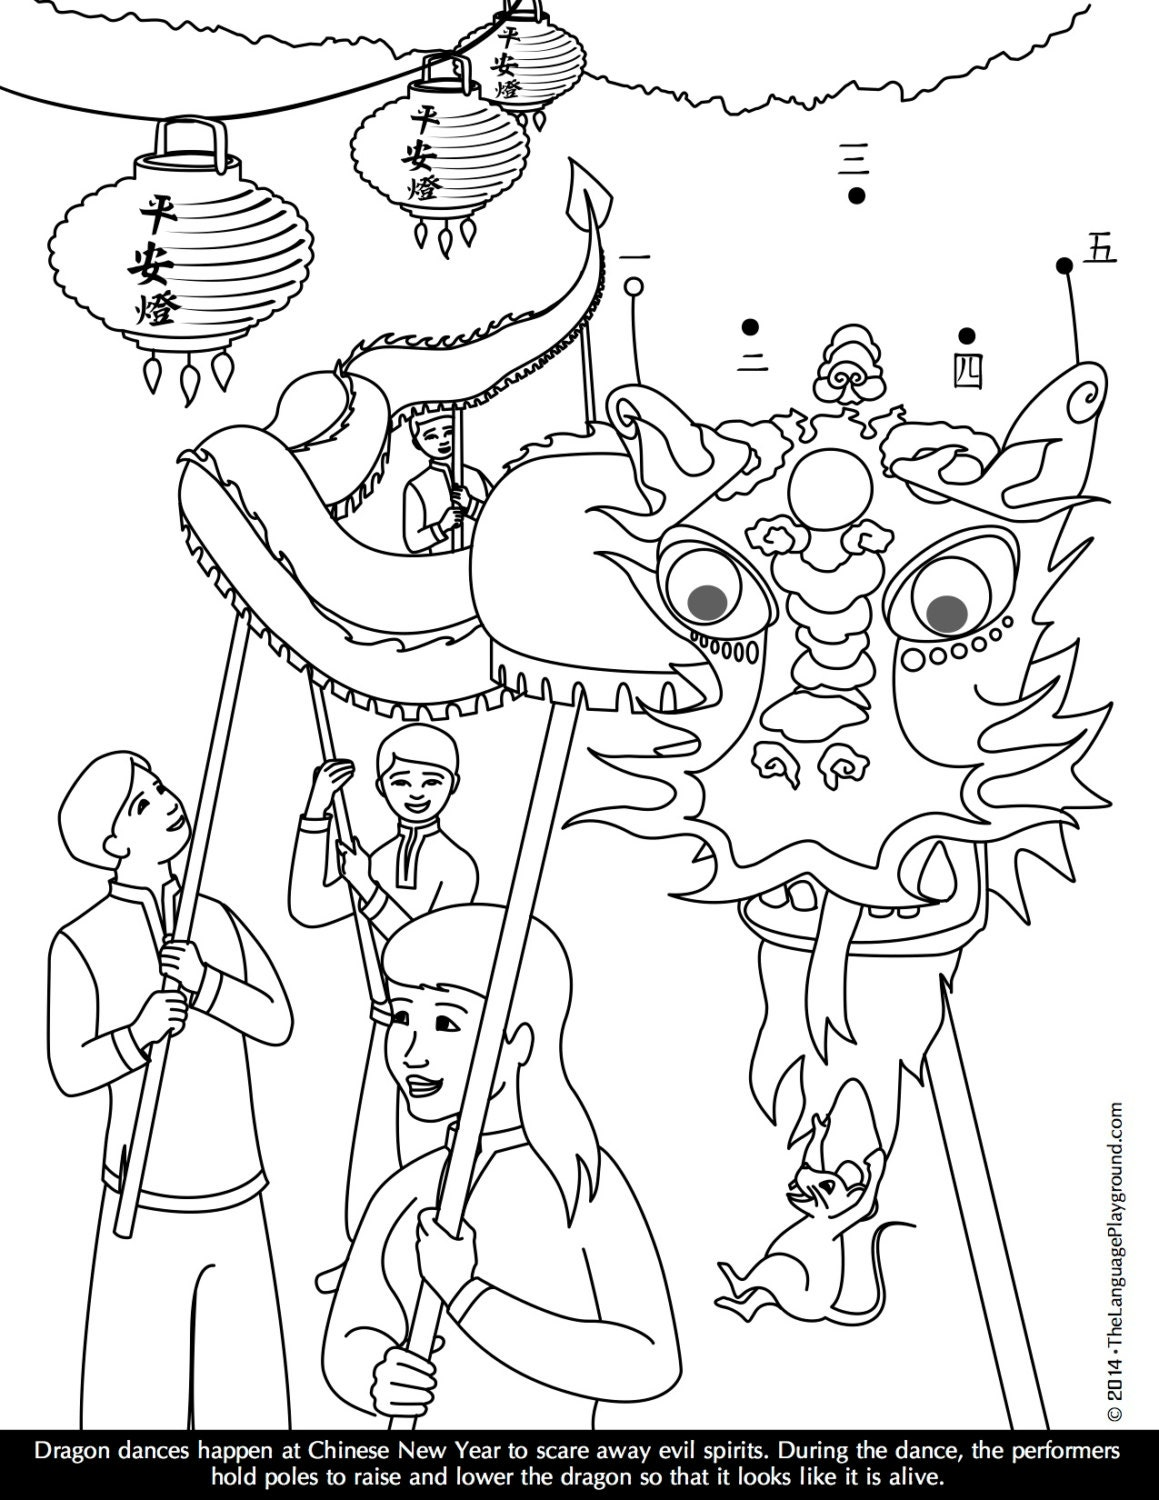 chines new year coloring pages - photo#20